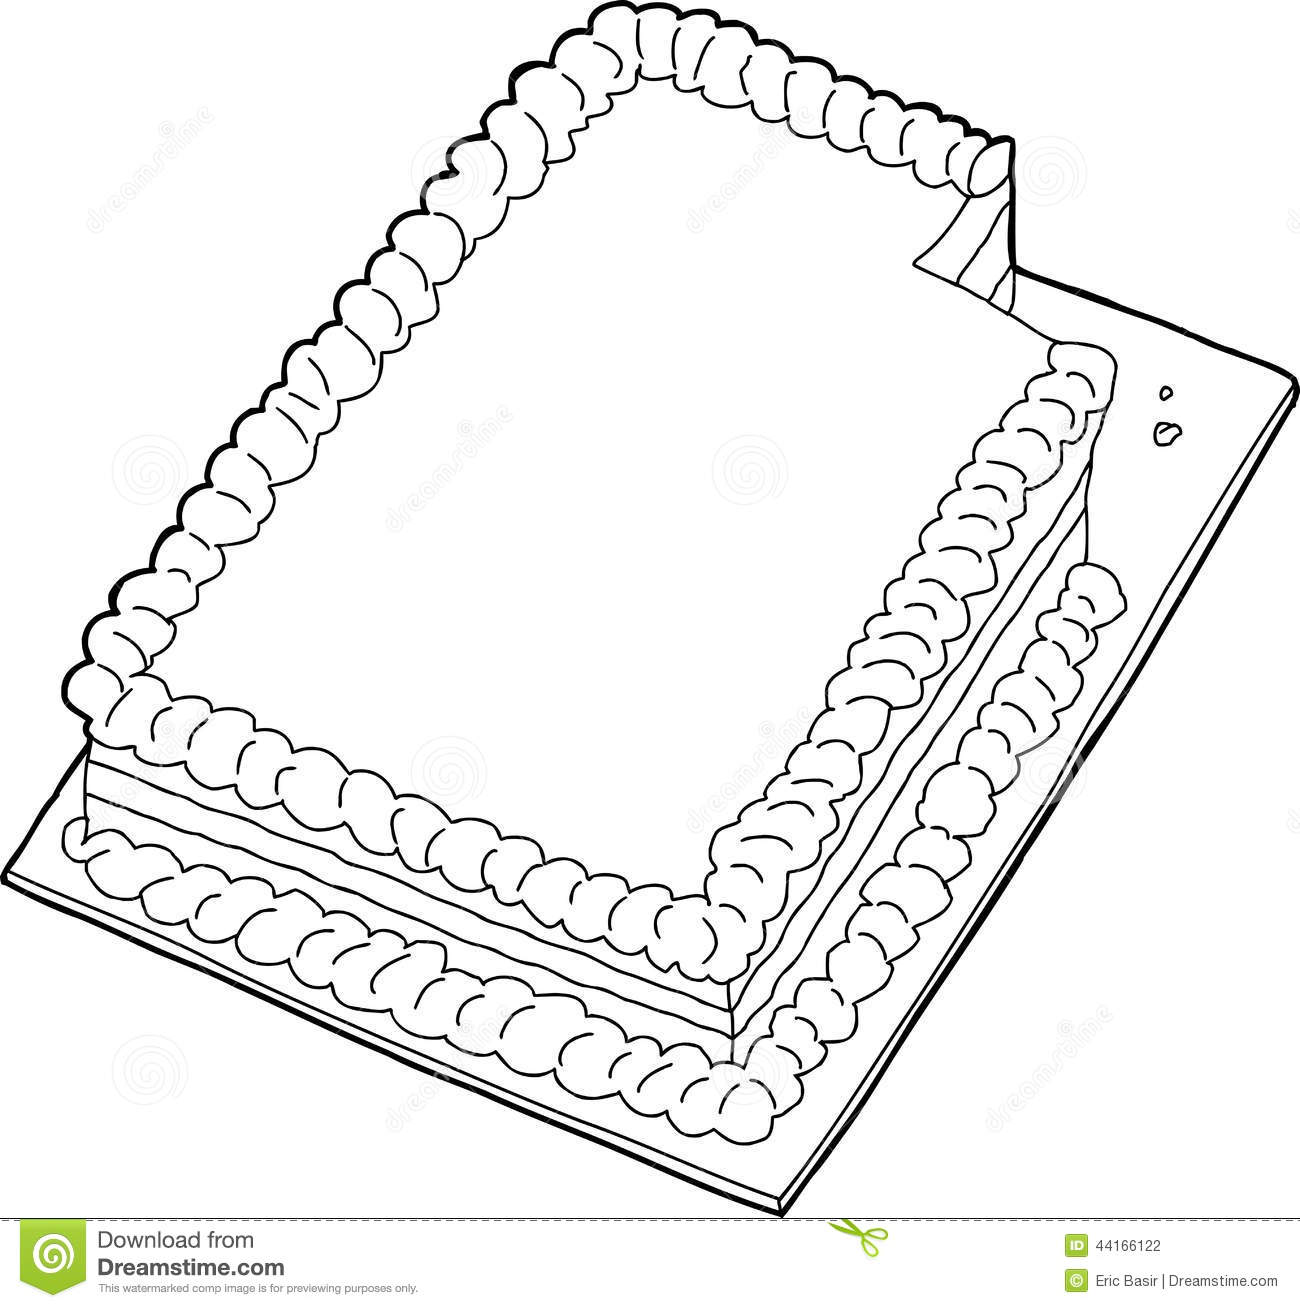 Outlined Cake With Missing Slice Stock Vector